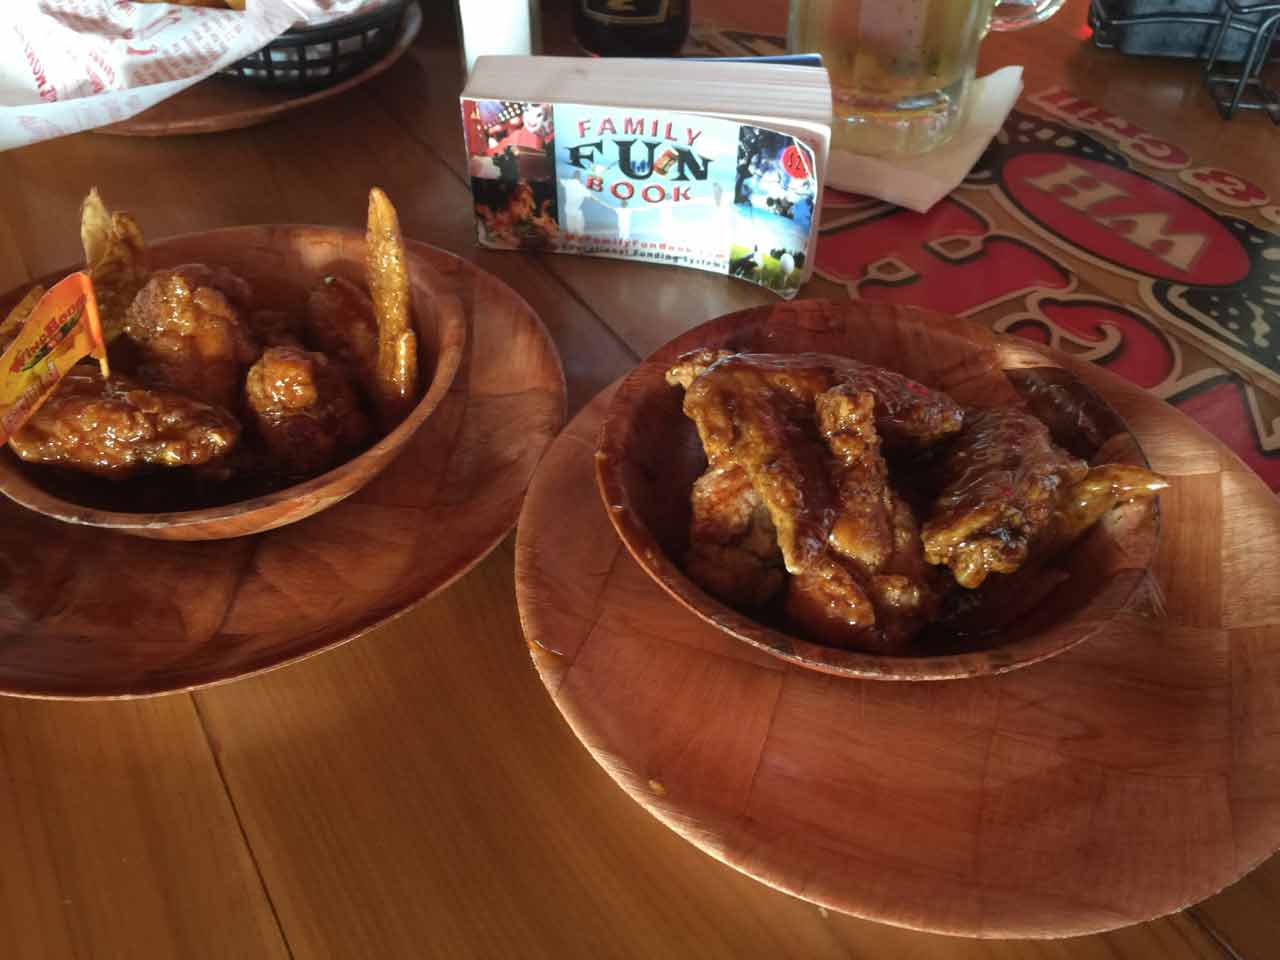 Winghouse food recived with coupon in The Family Fun Book - Daytona Beach Florida